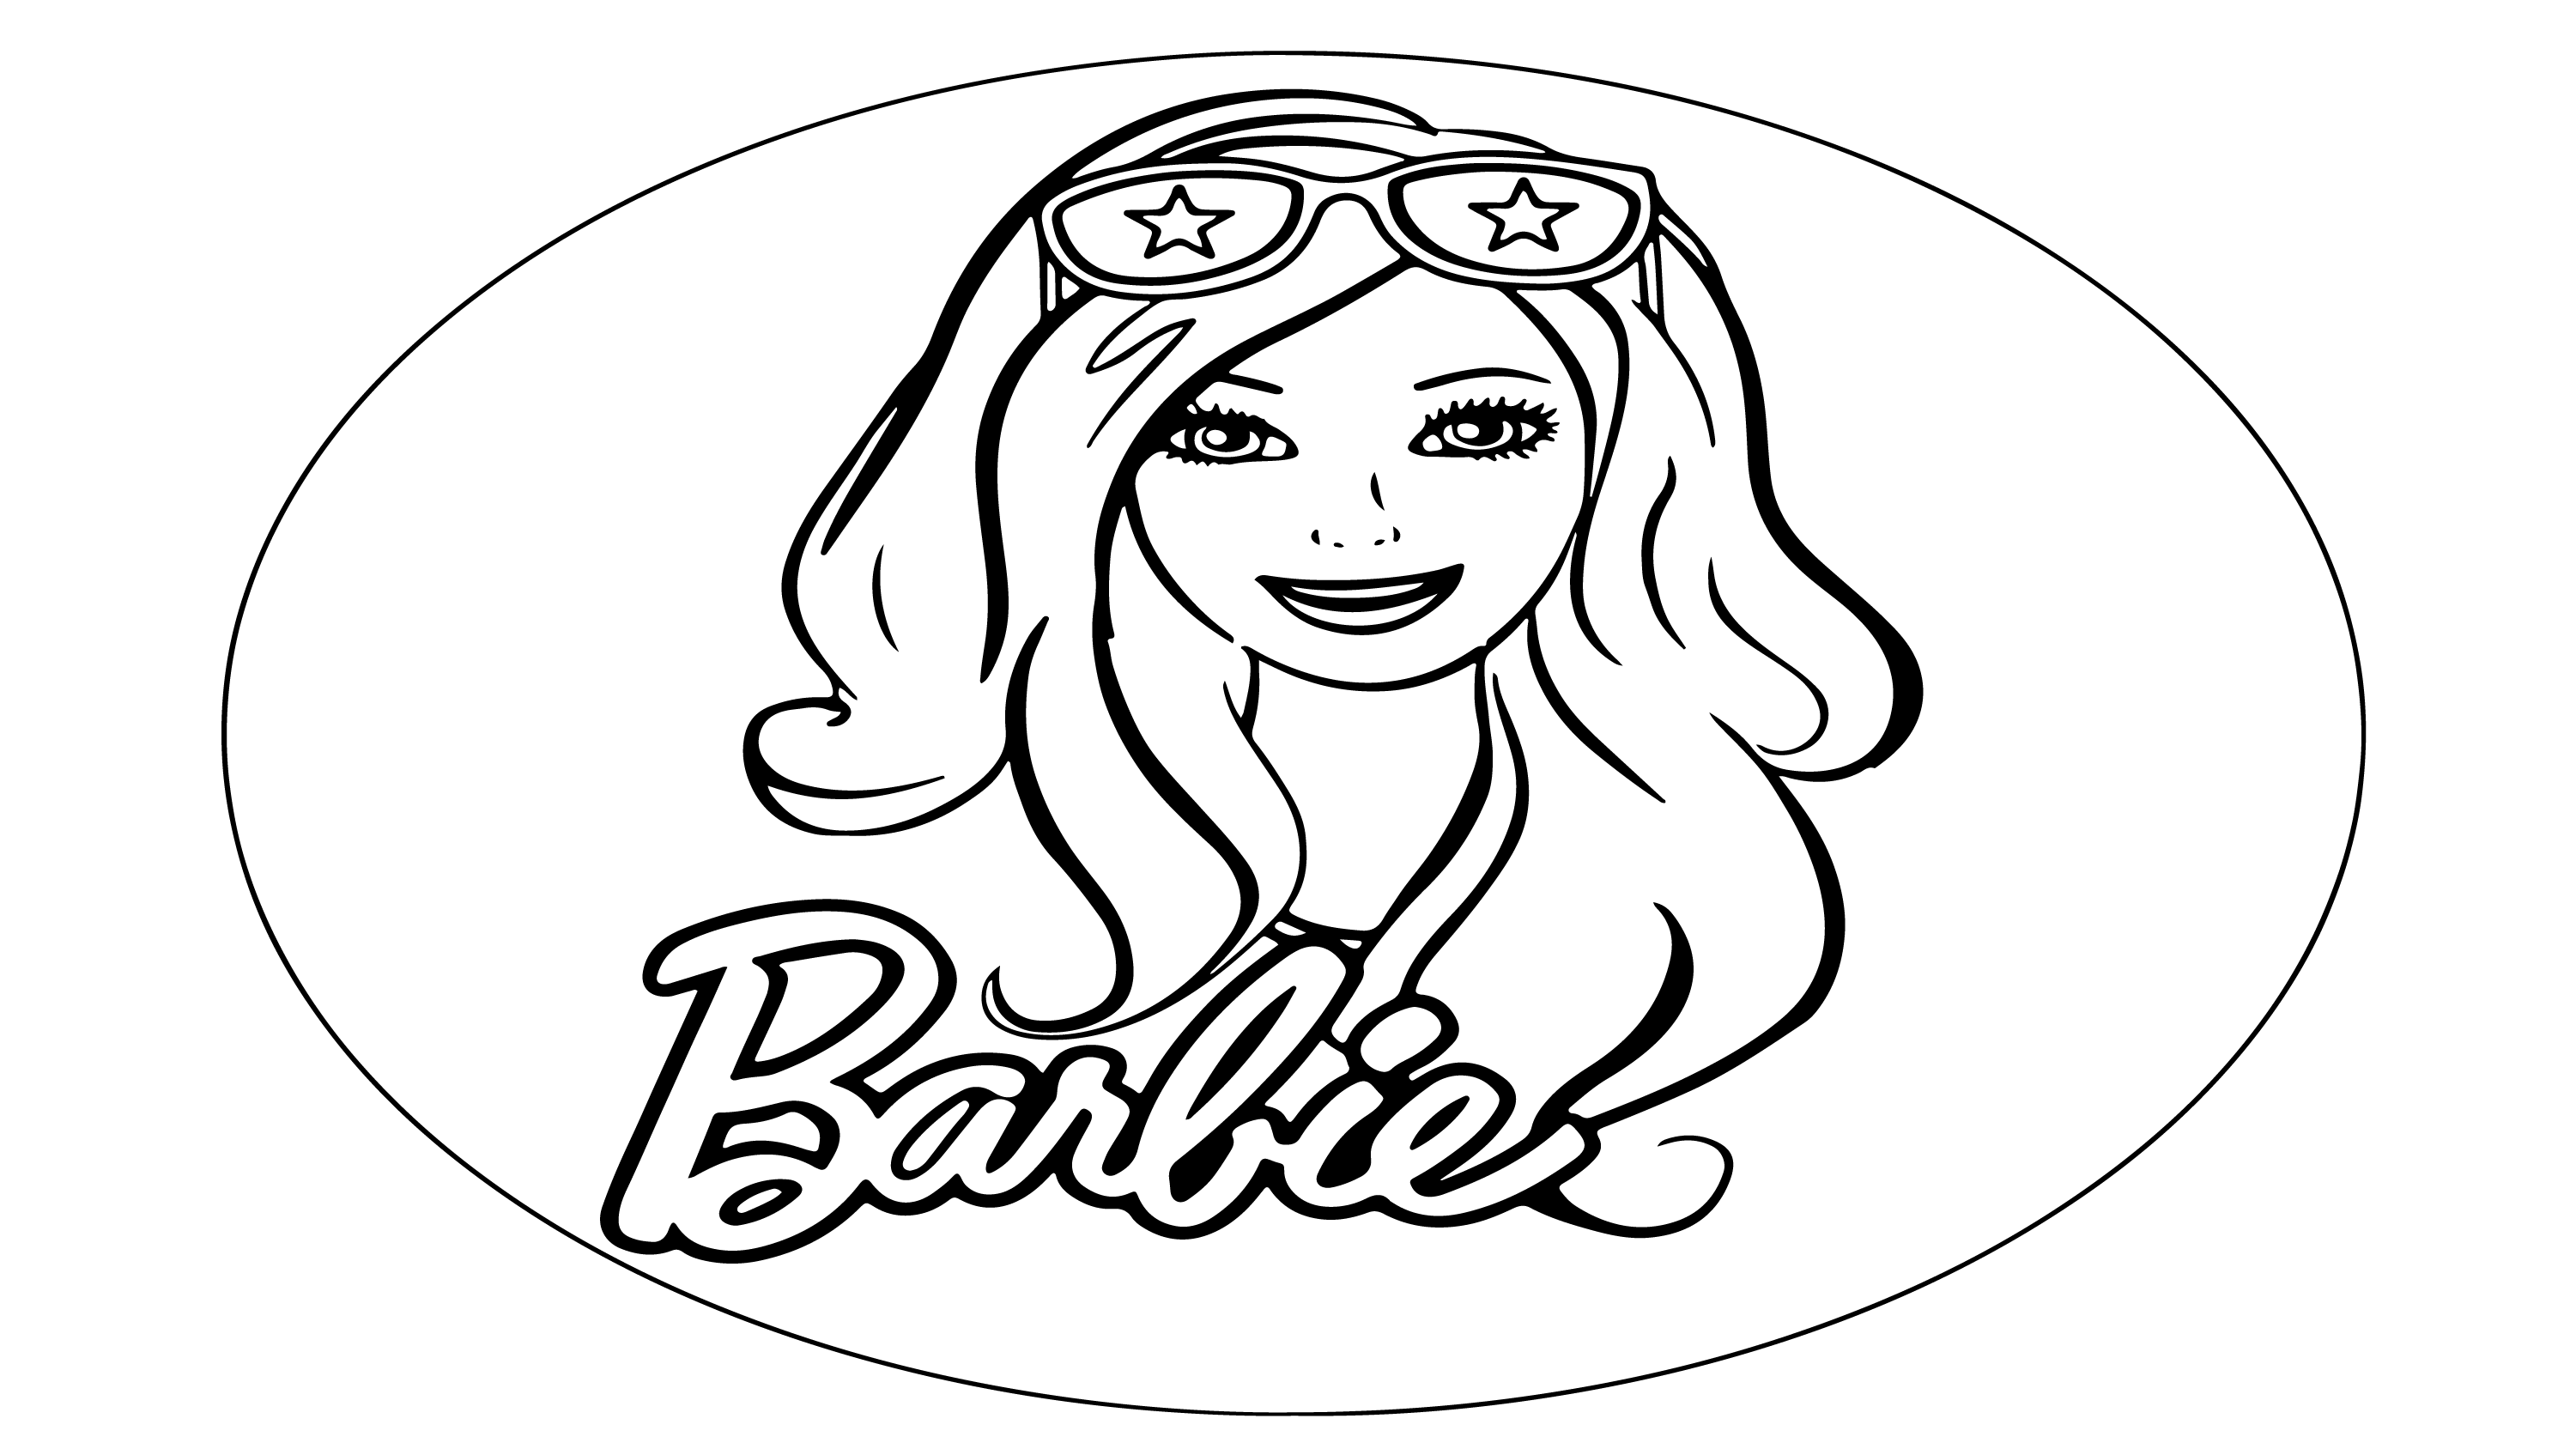 For The Coloring Page Of Our Barbie Doll We First Draw It With A